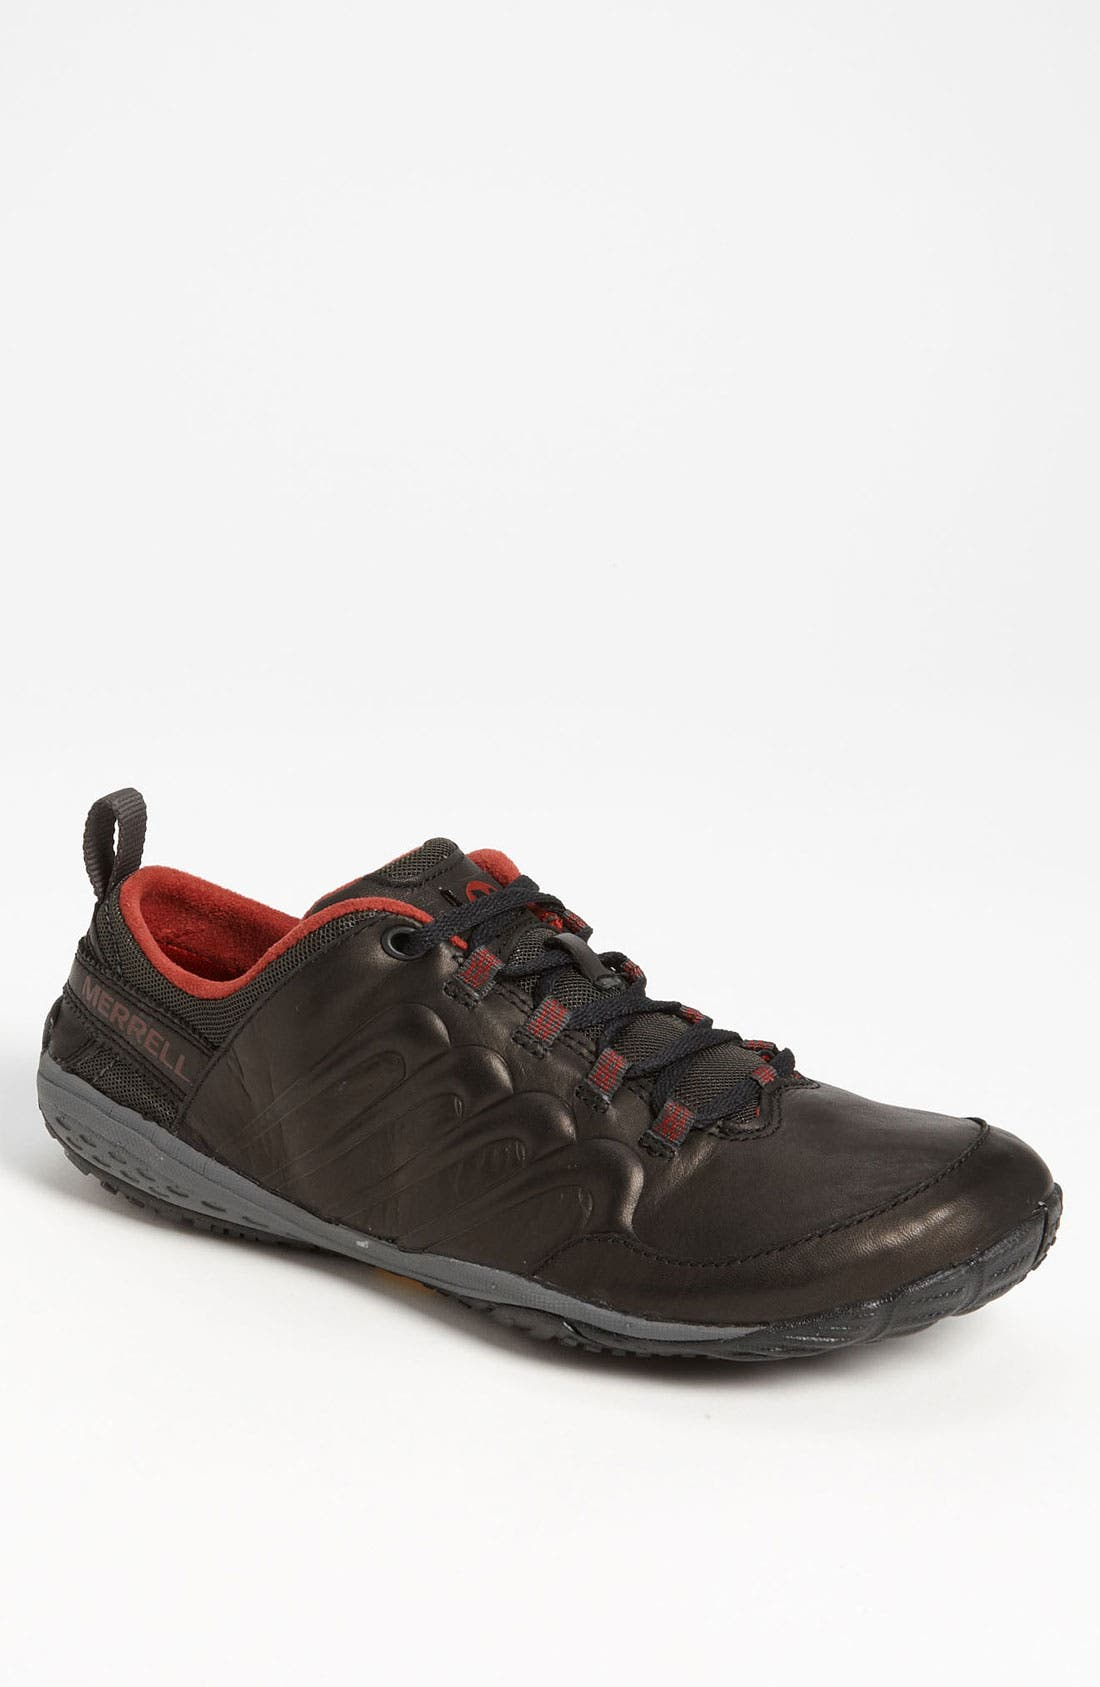 Main Image - Merrell 'Tour Glove' Sneaker (Men)